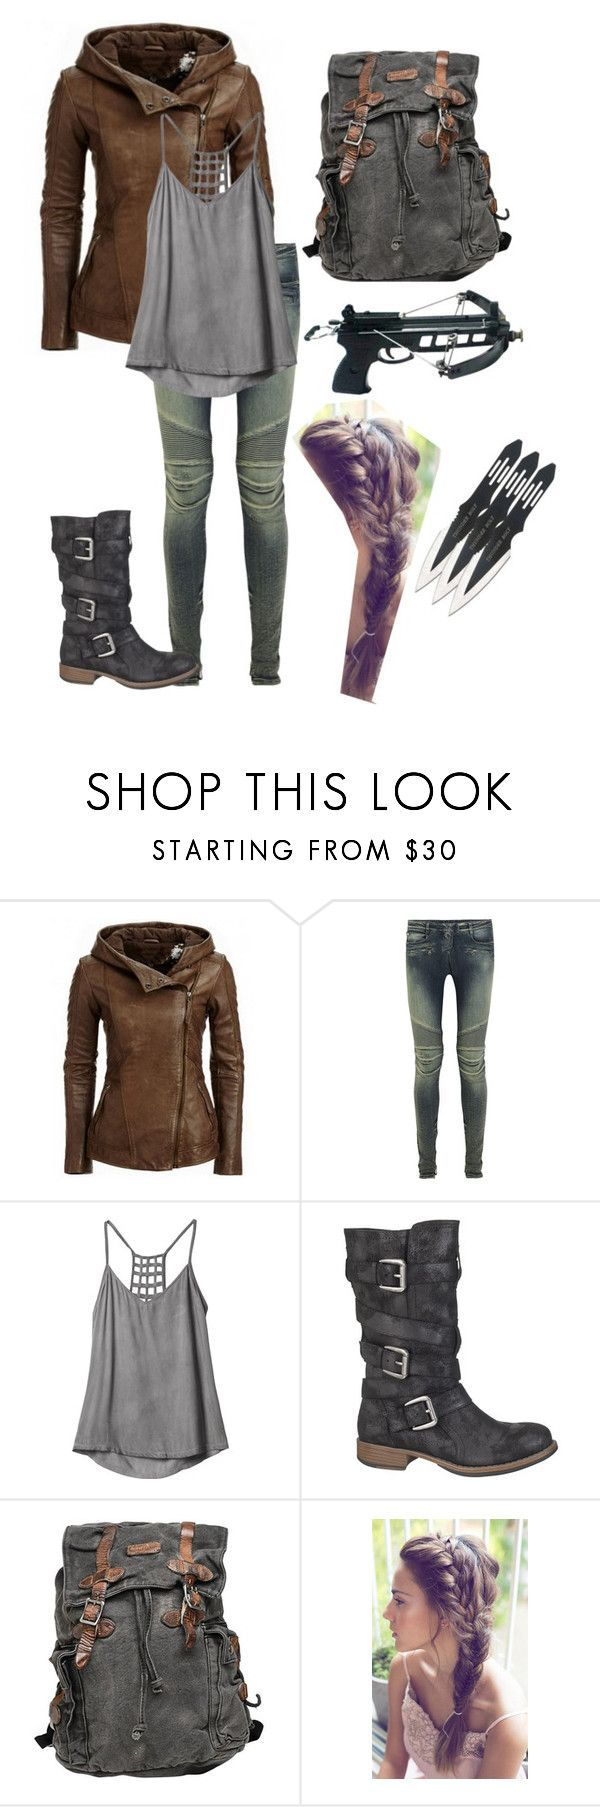 """""""Post apocalyptic inspired outfit"""" by lexitolhurst liked"""